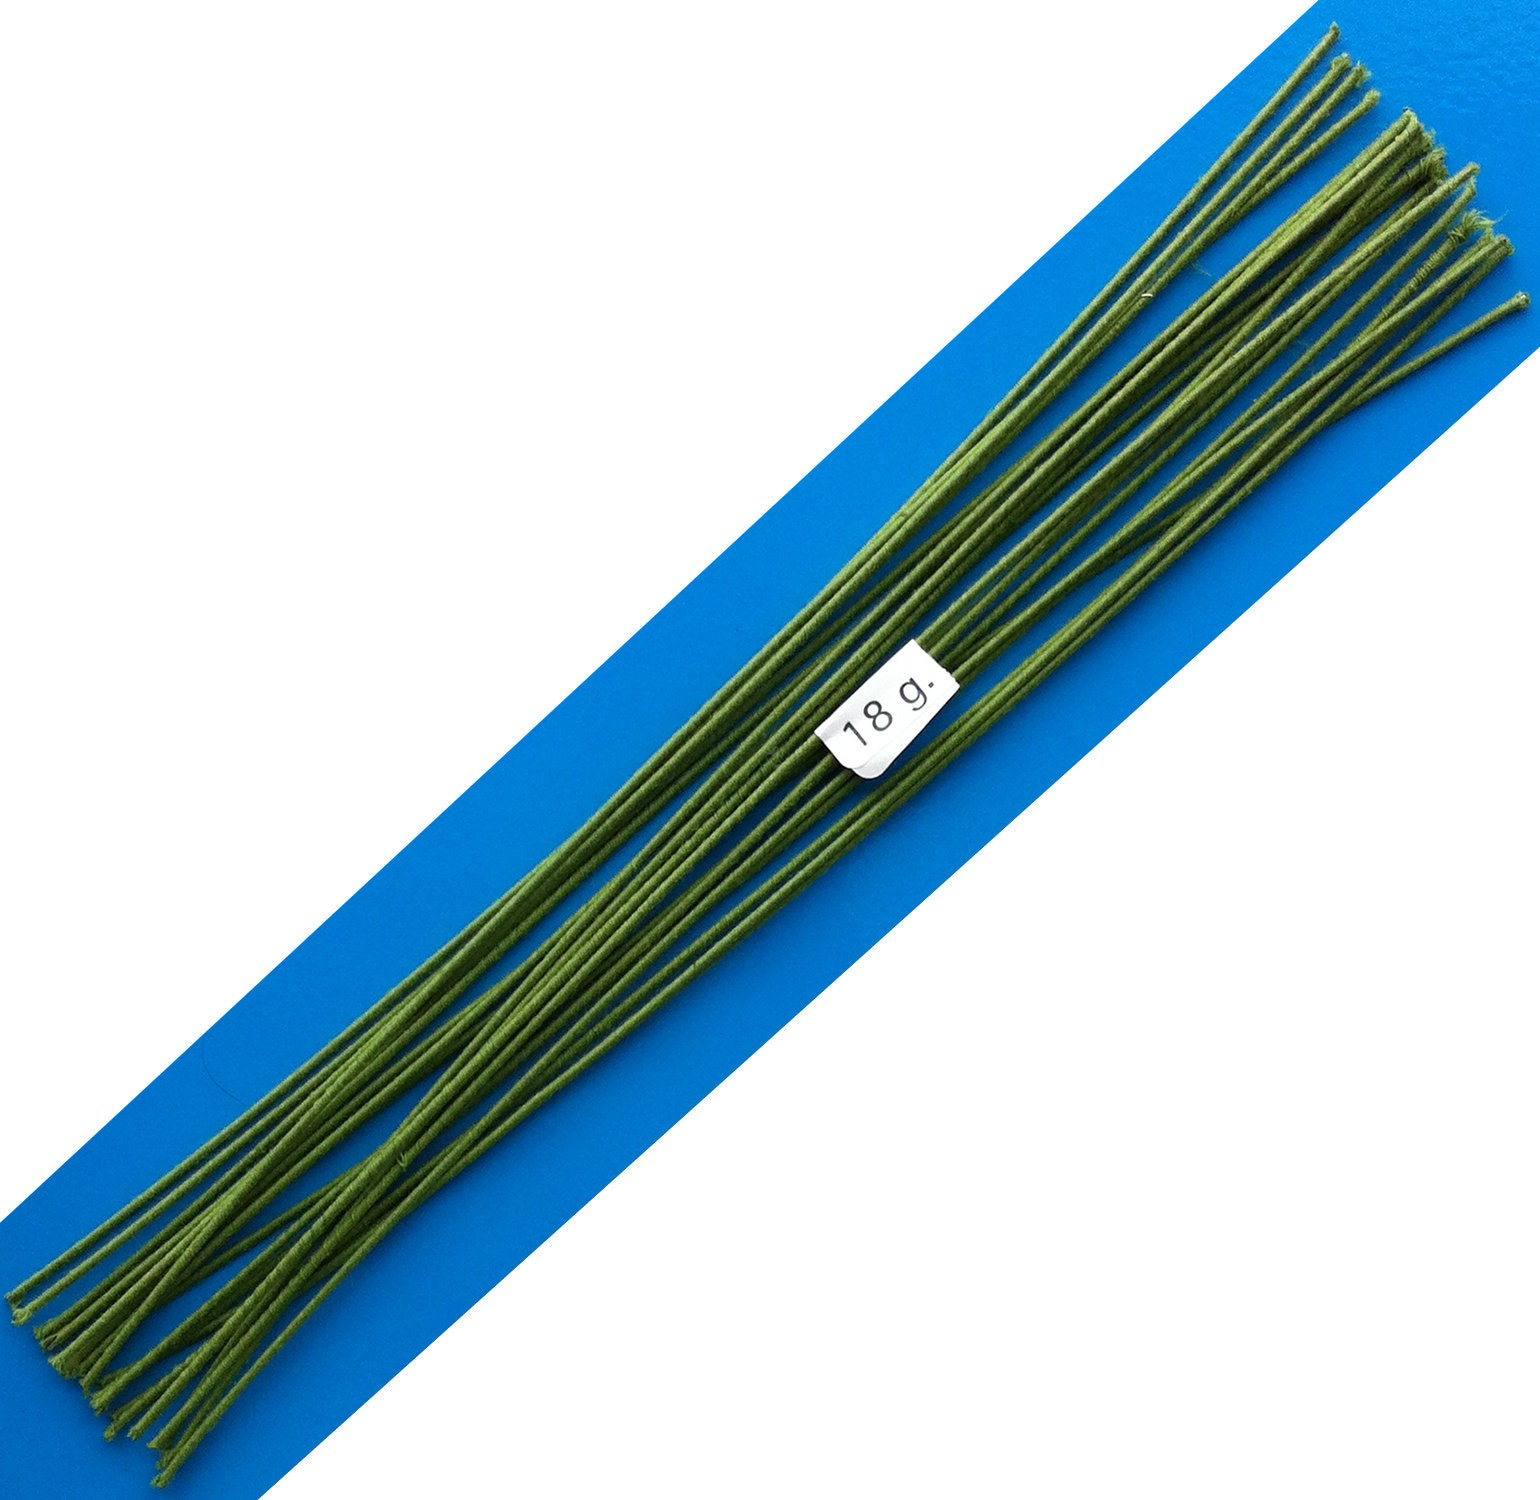 18 Gauge Green Cotton Covered Floral Wire - 20 feet per bundle (6.1m ...